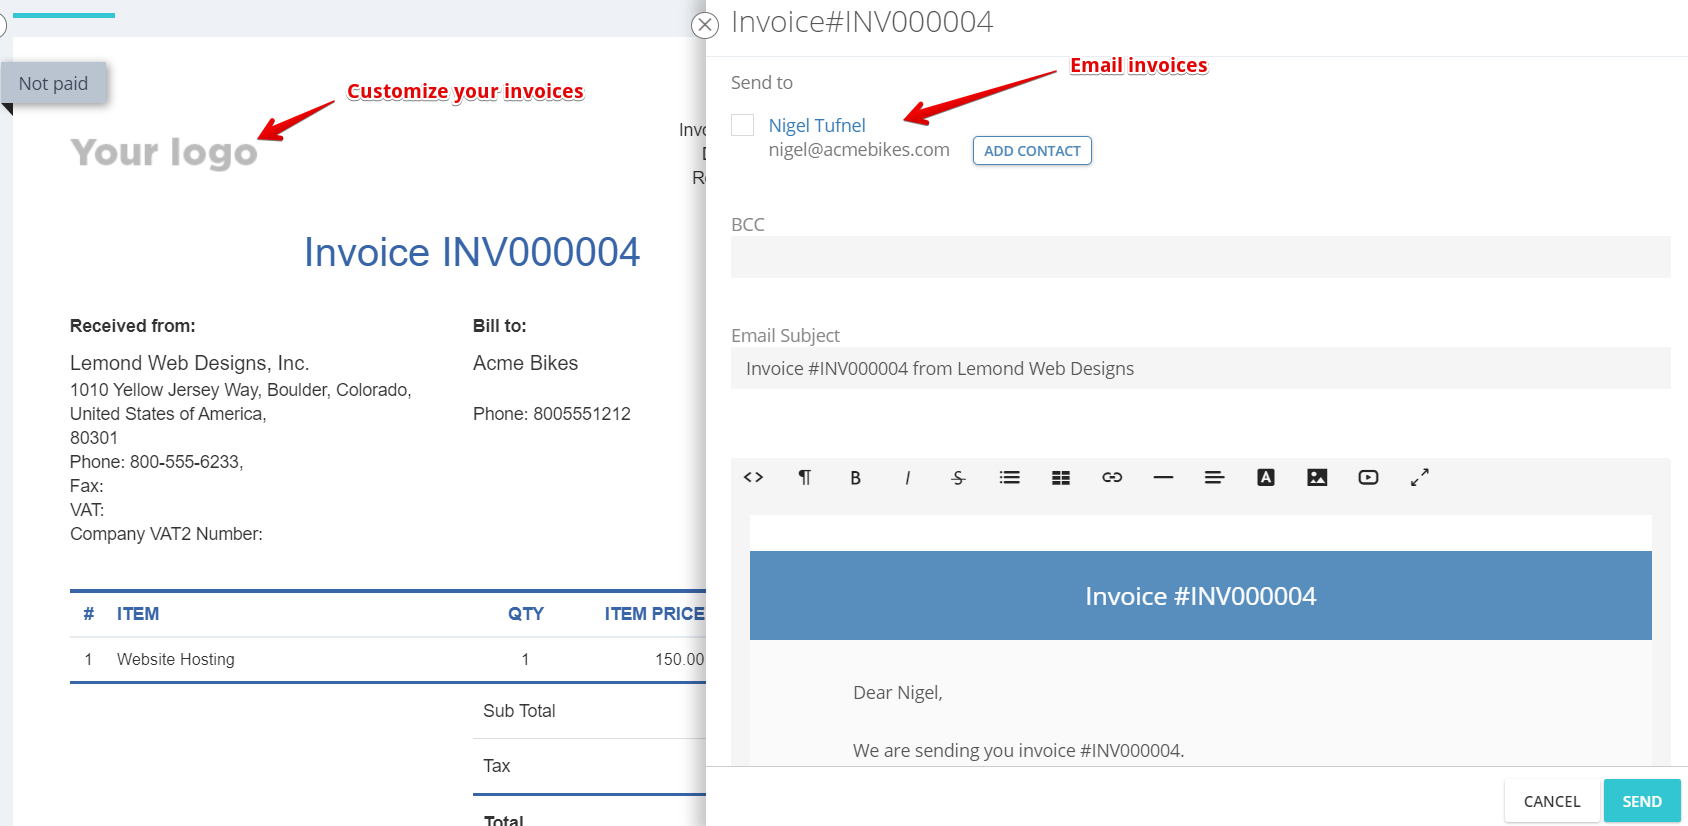 Customize invoices in Flowlu with your logo